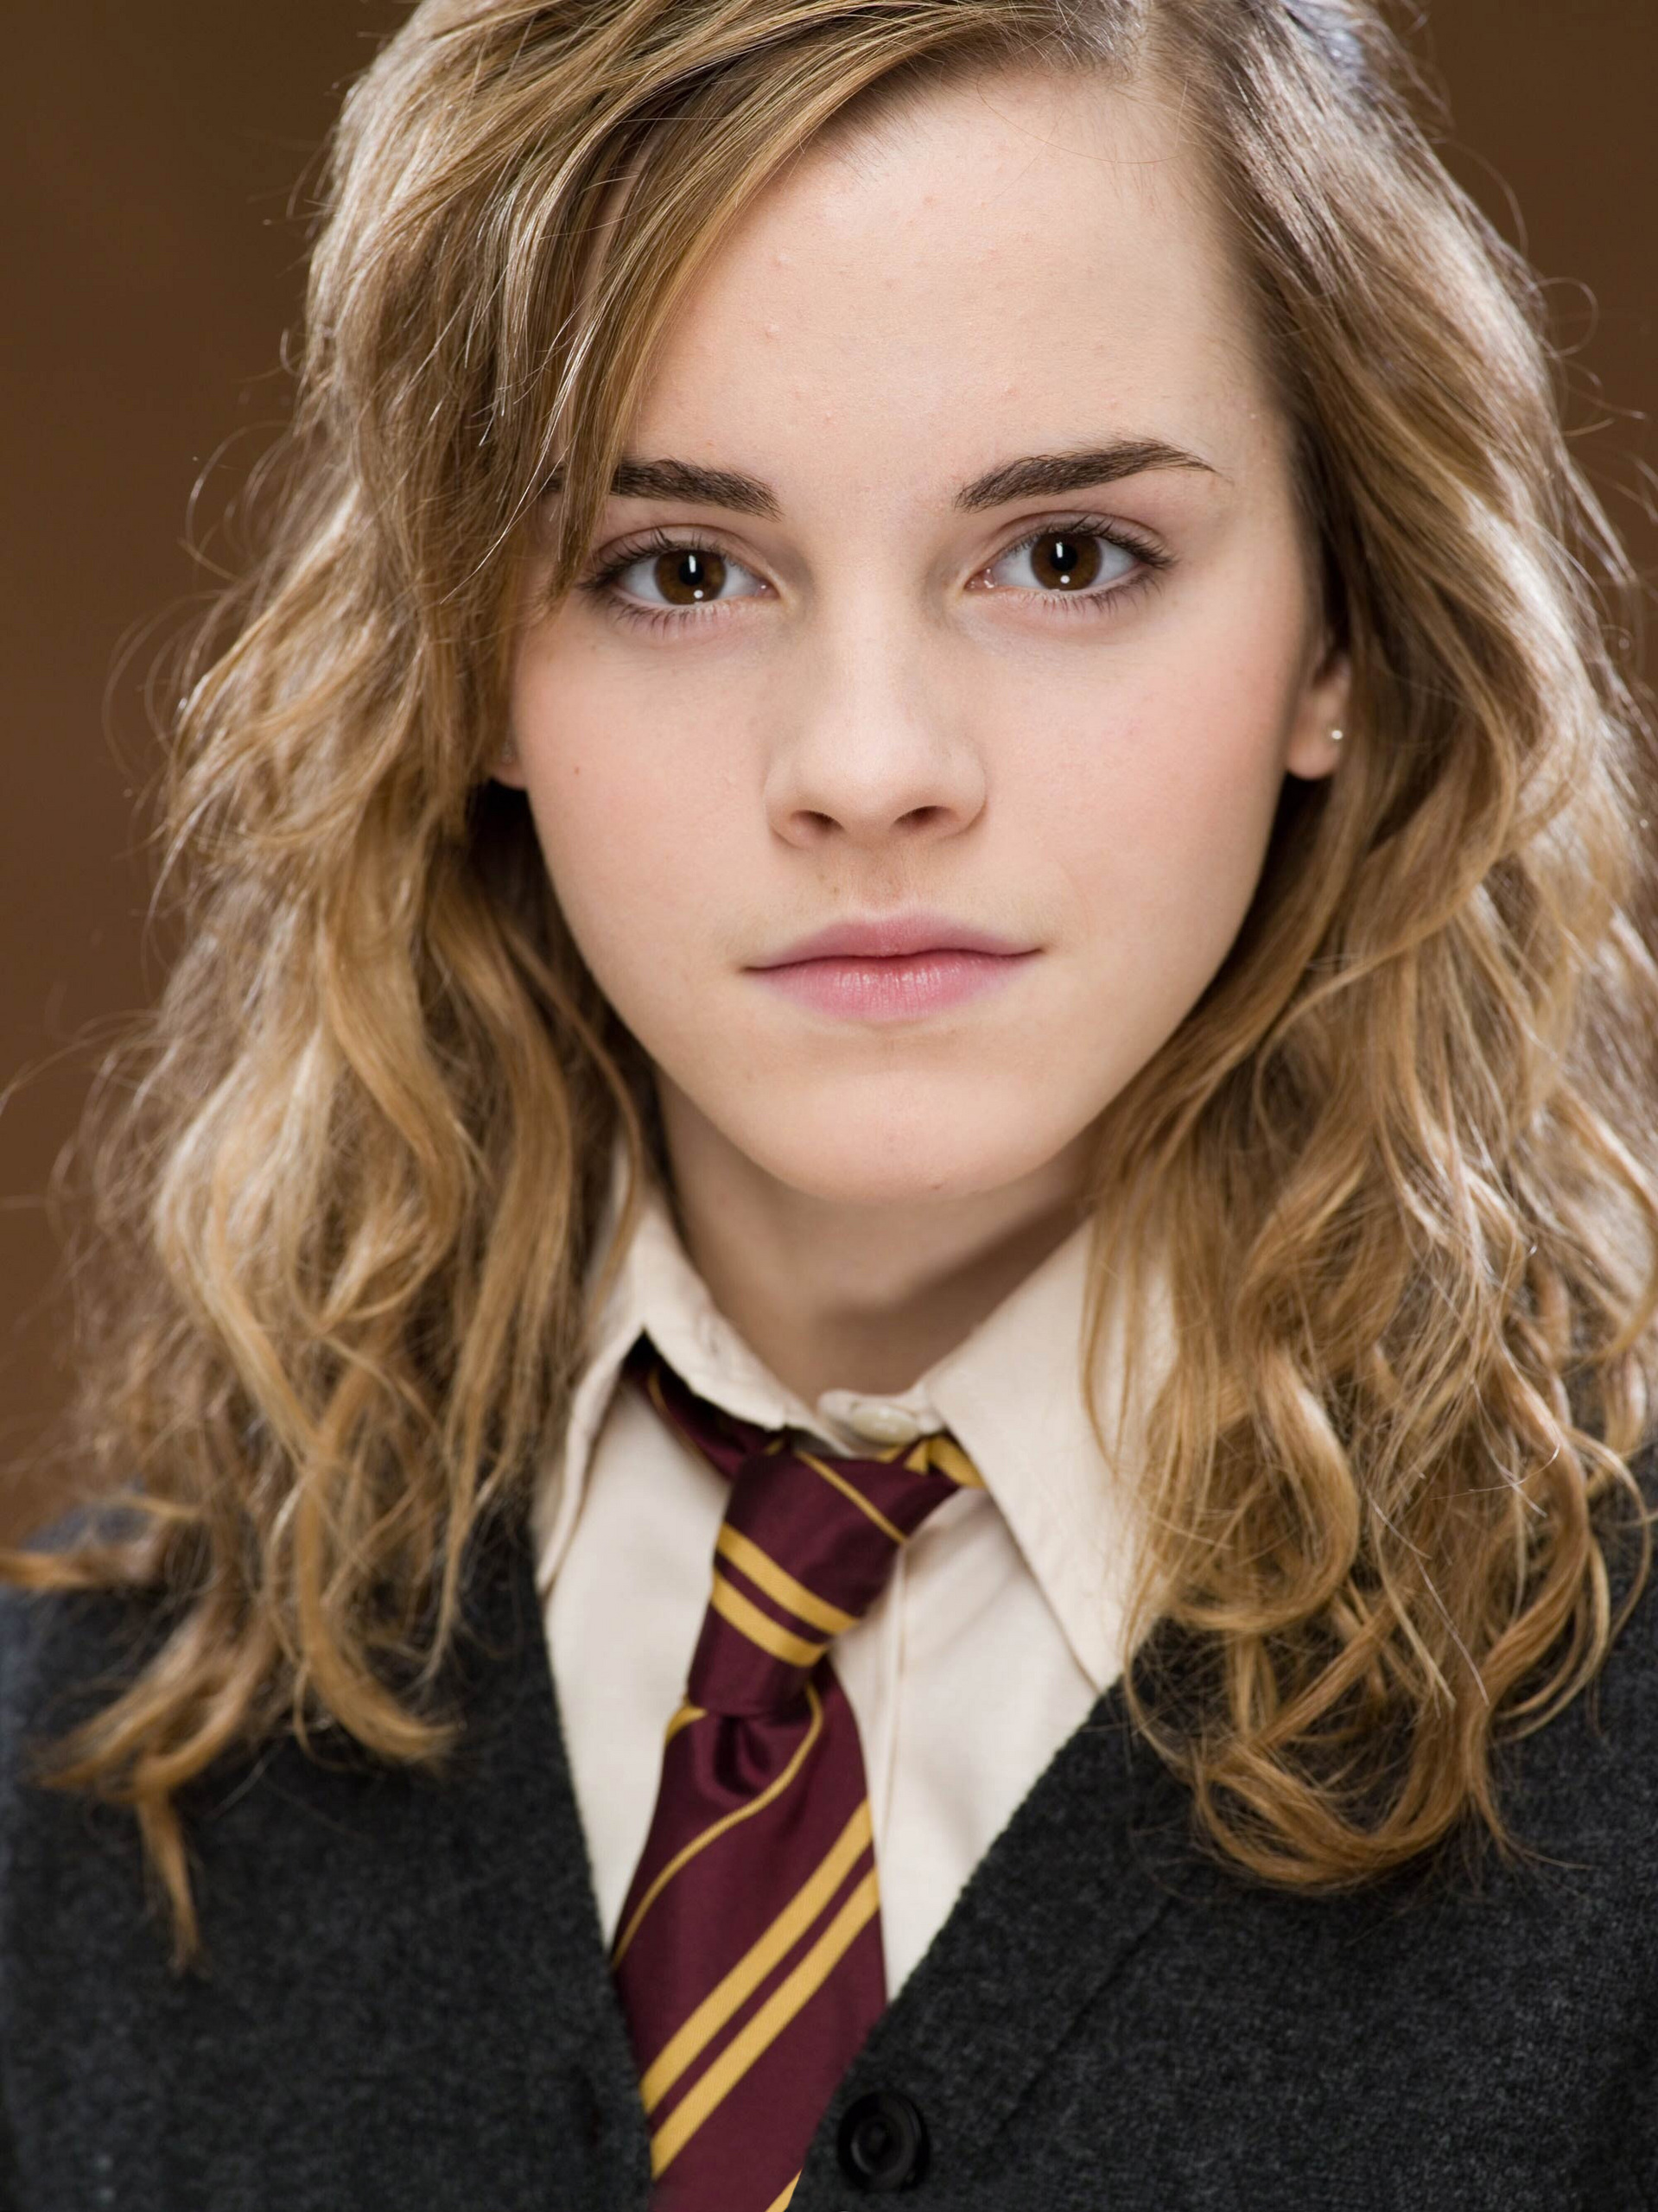 Emma Watson in Harry Potter Hermione Granger